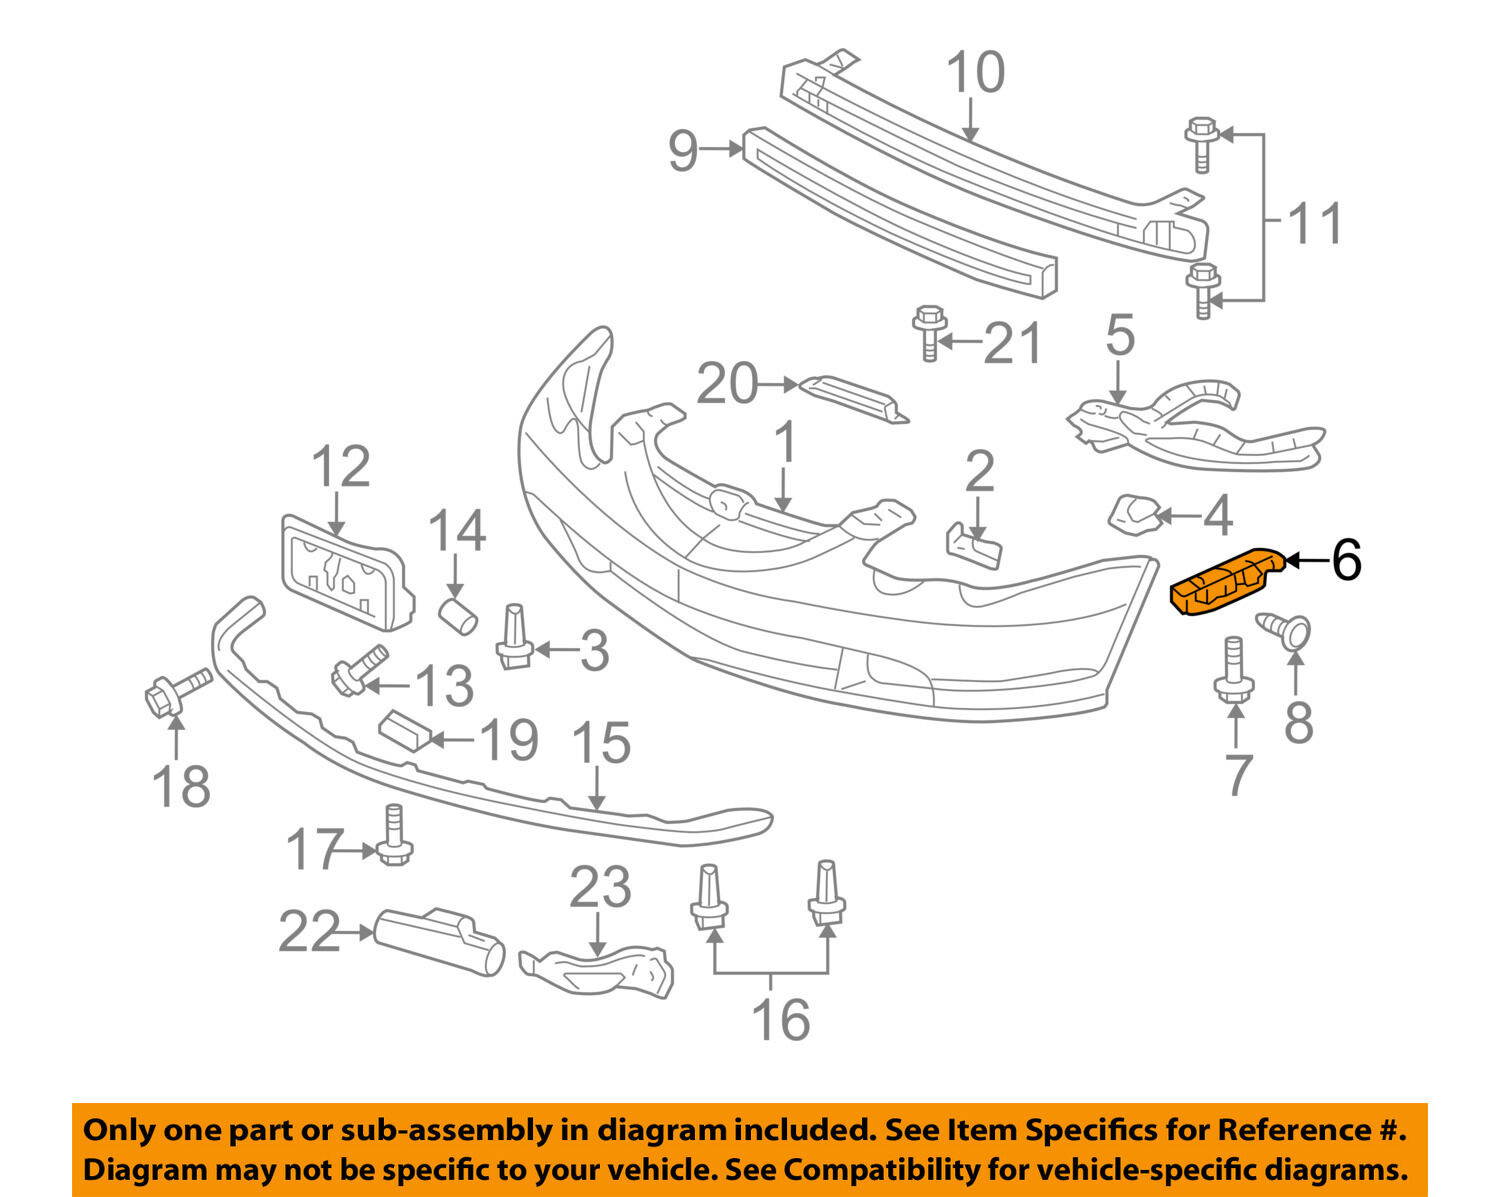 Rsx Parts Diagram Electrical Wiring Diagrams 2002 Fuse Schematic Exhaust Acura Transmission